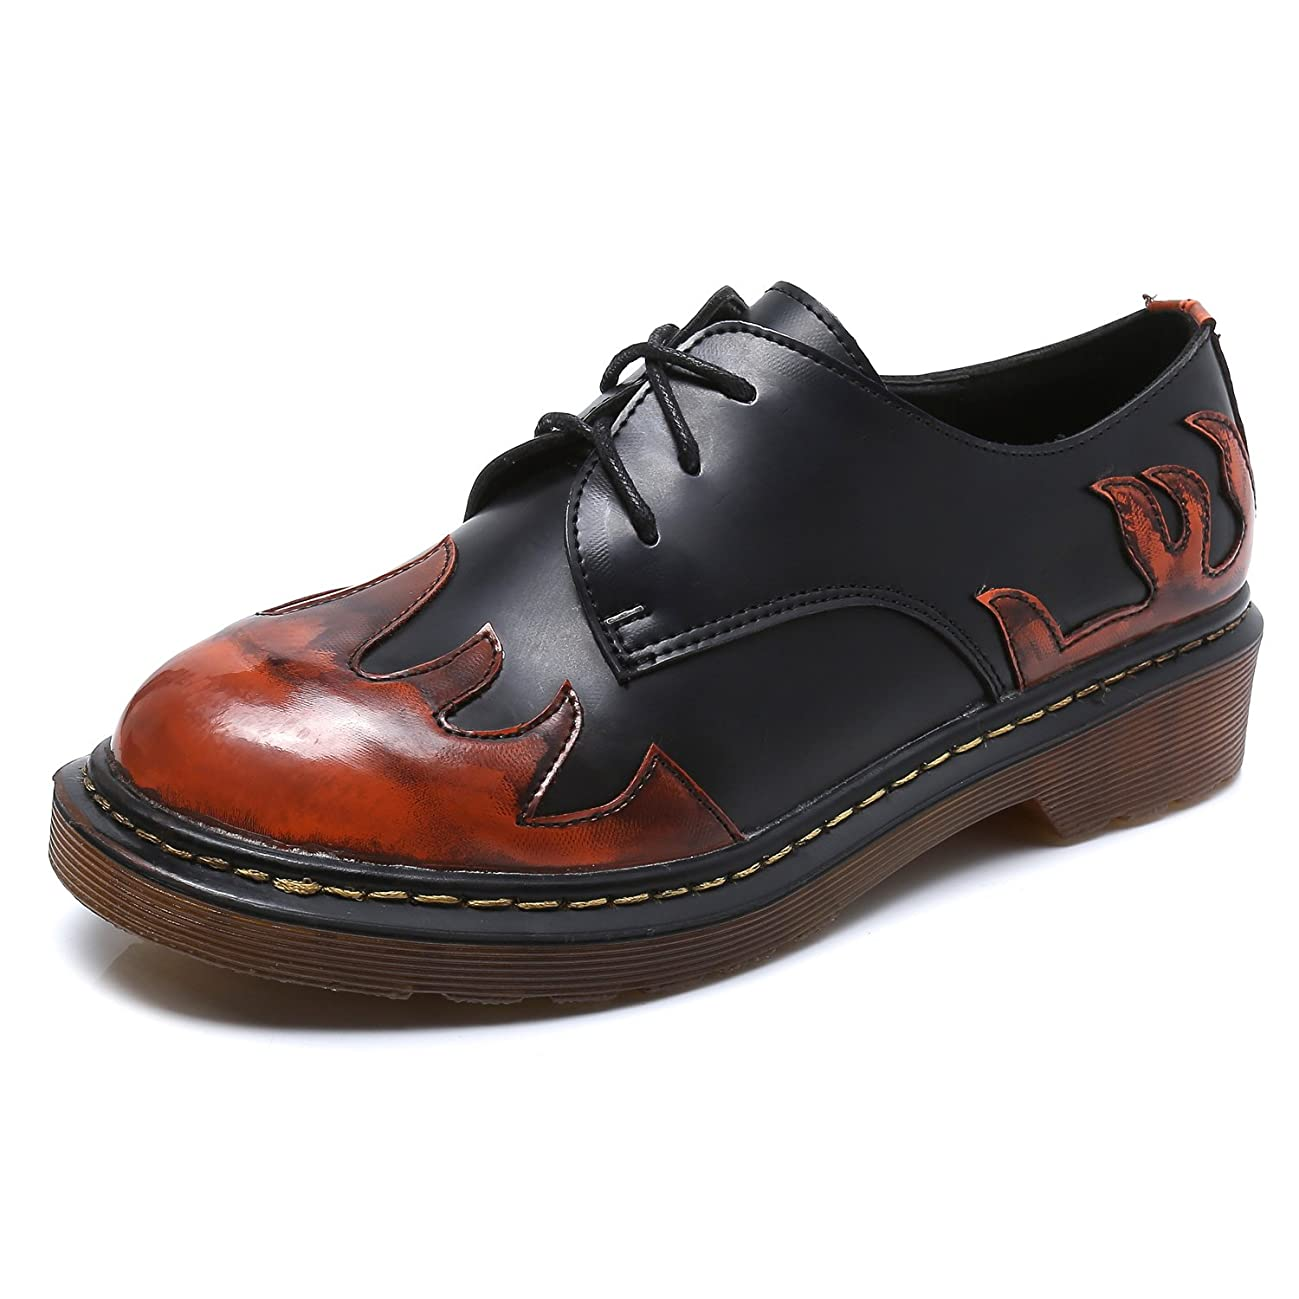 Smilun Lady?ˉs Classic Lace-up Shoes Red Flames Round Toe